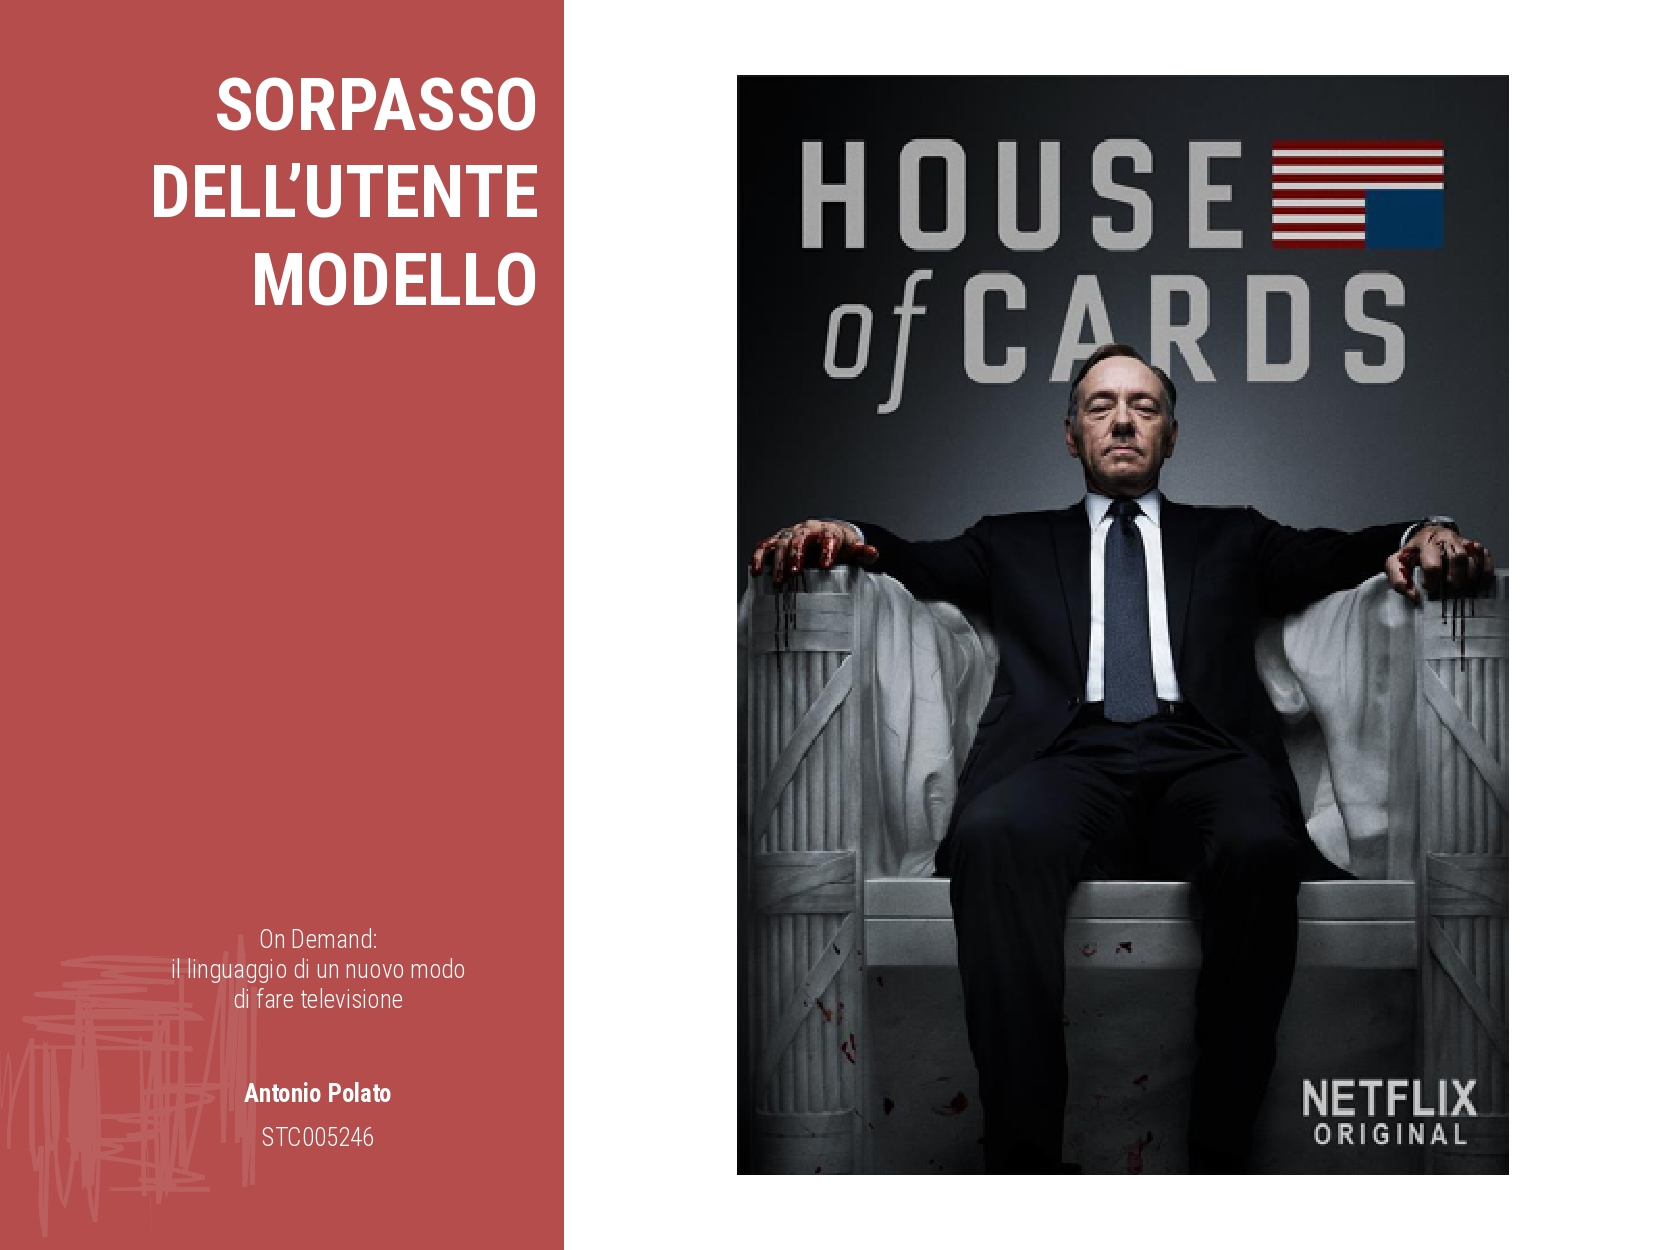 On demand il linguaggio di un nuovo modo di fare la televisione Antonio Polato house of cards